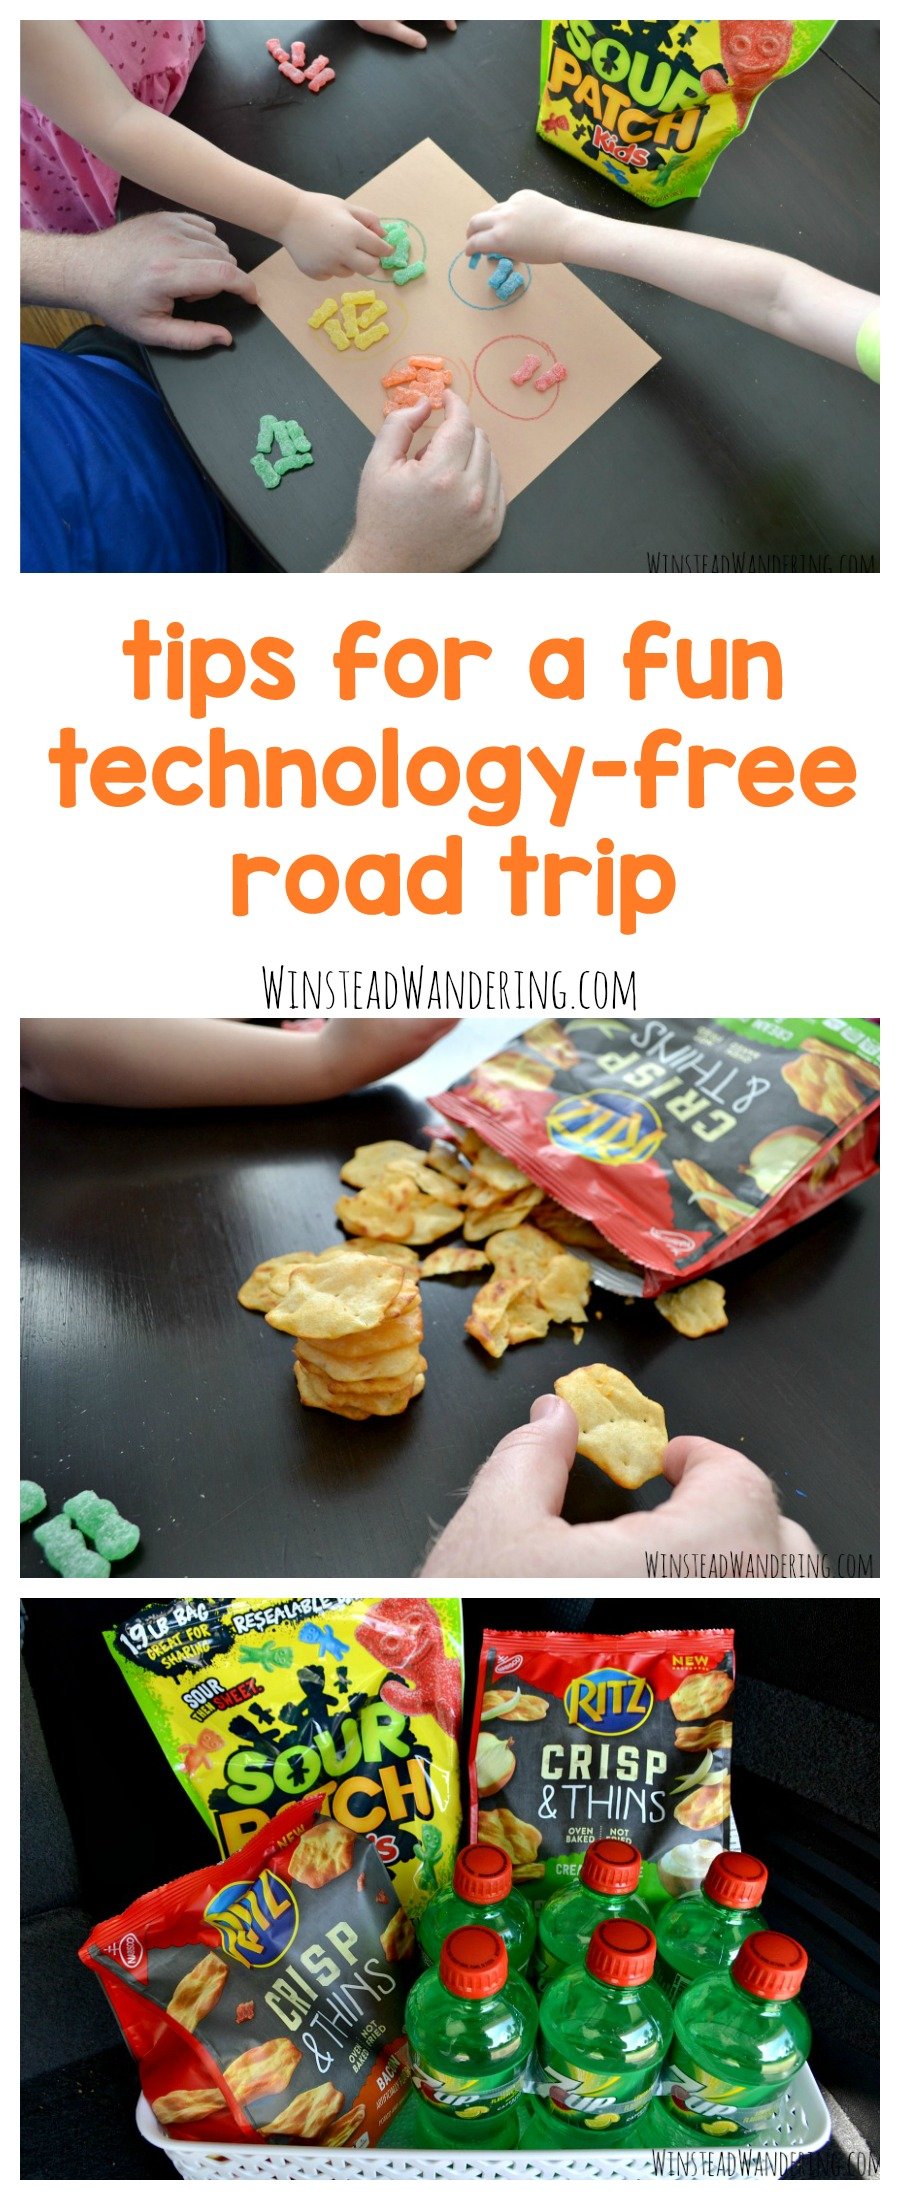 Are you ready to give your kids the same old-fashioned road trip you enjoyed as a child? Check out these easy, creative tips for a fun technology-free road trip!